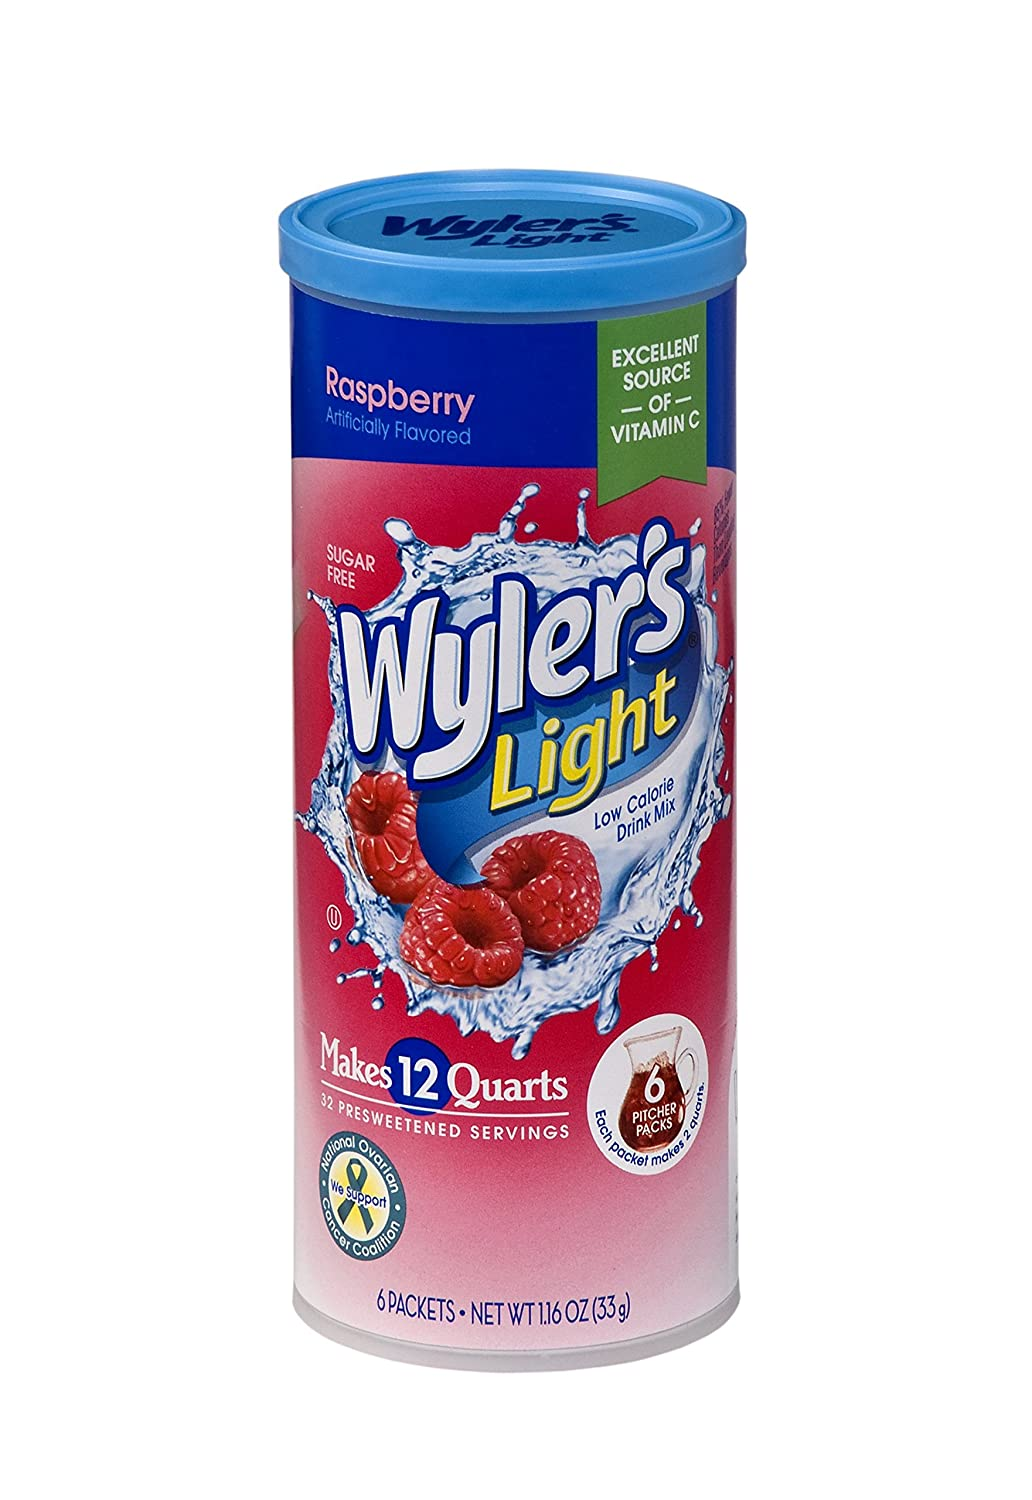 Wyler's Light Canister Drink Mix - Raspberry Water Powder Enhancer Canister (6 Canisters that make 12 Quarts Each)